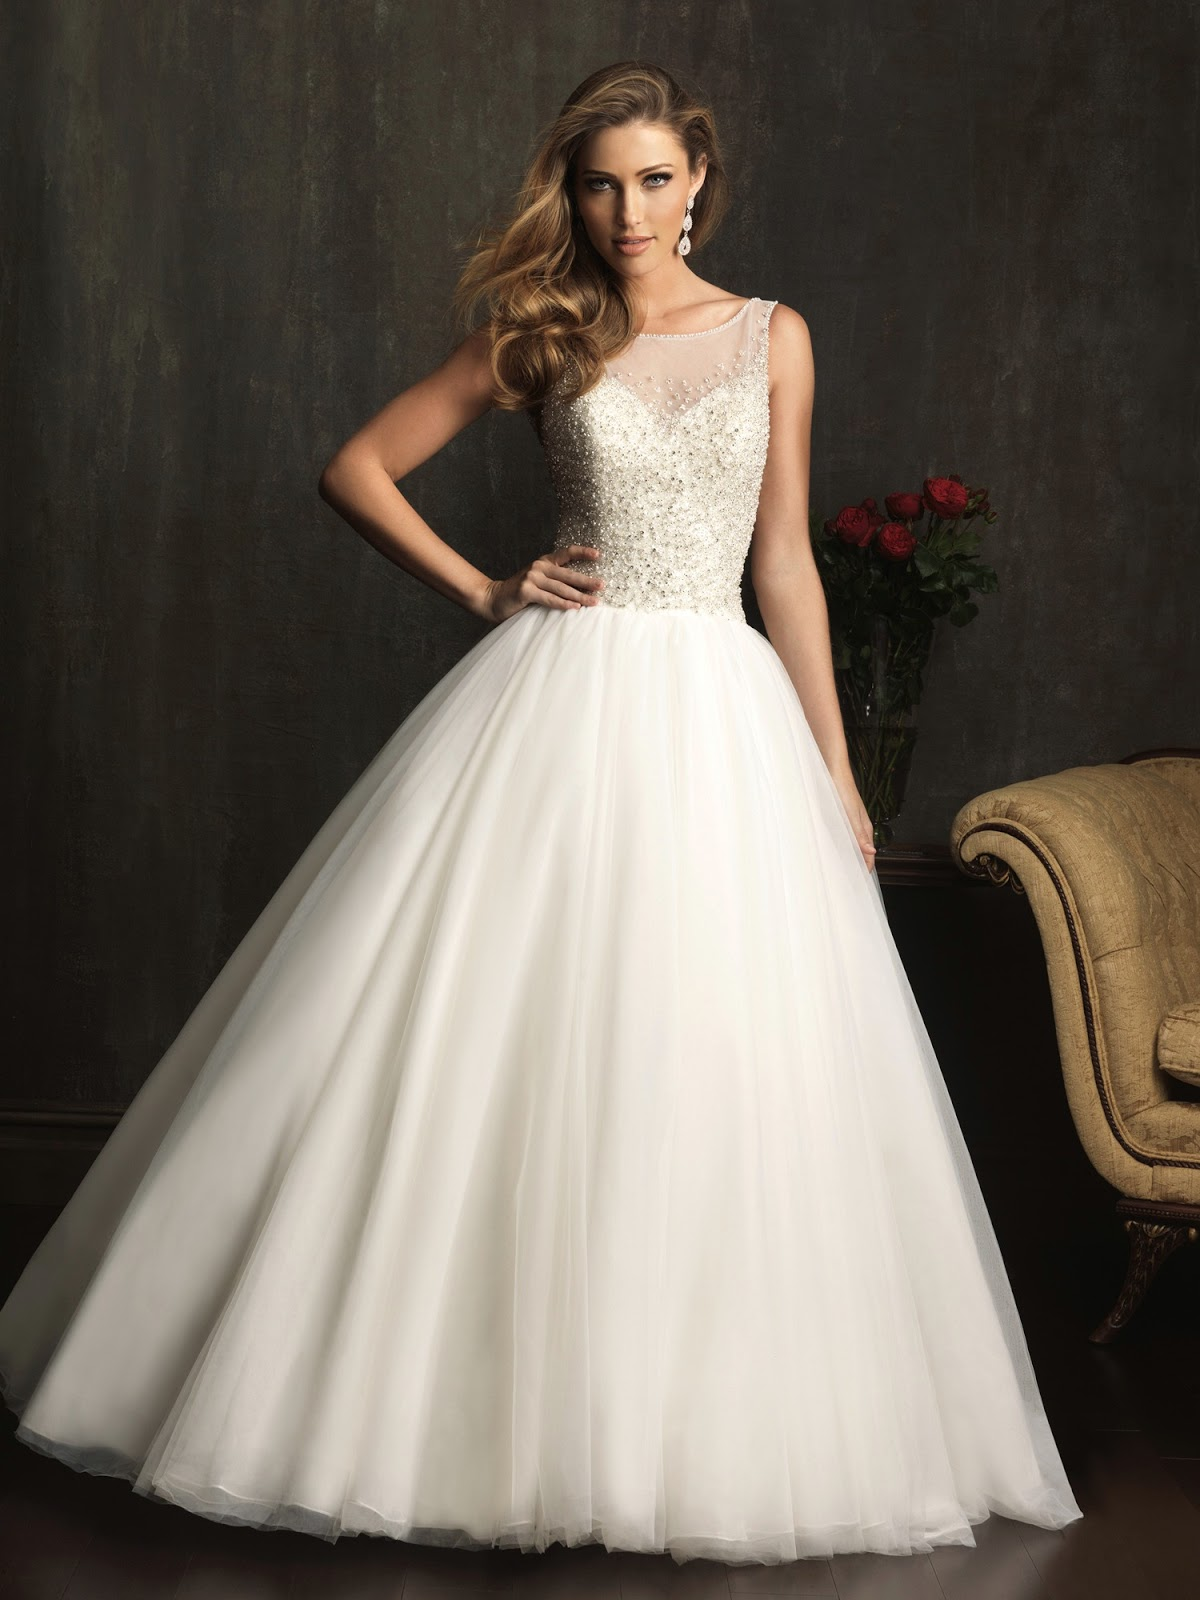 Dressybridal allure wedding dresses fall 2013 collection for Wedding dress with illusion top